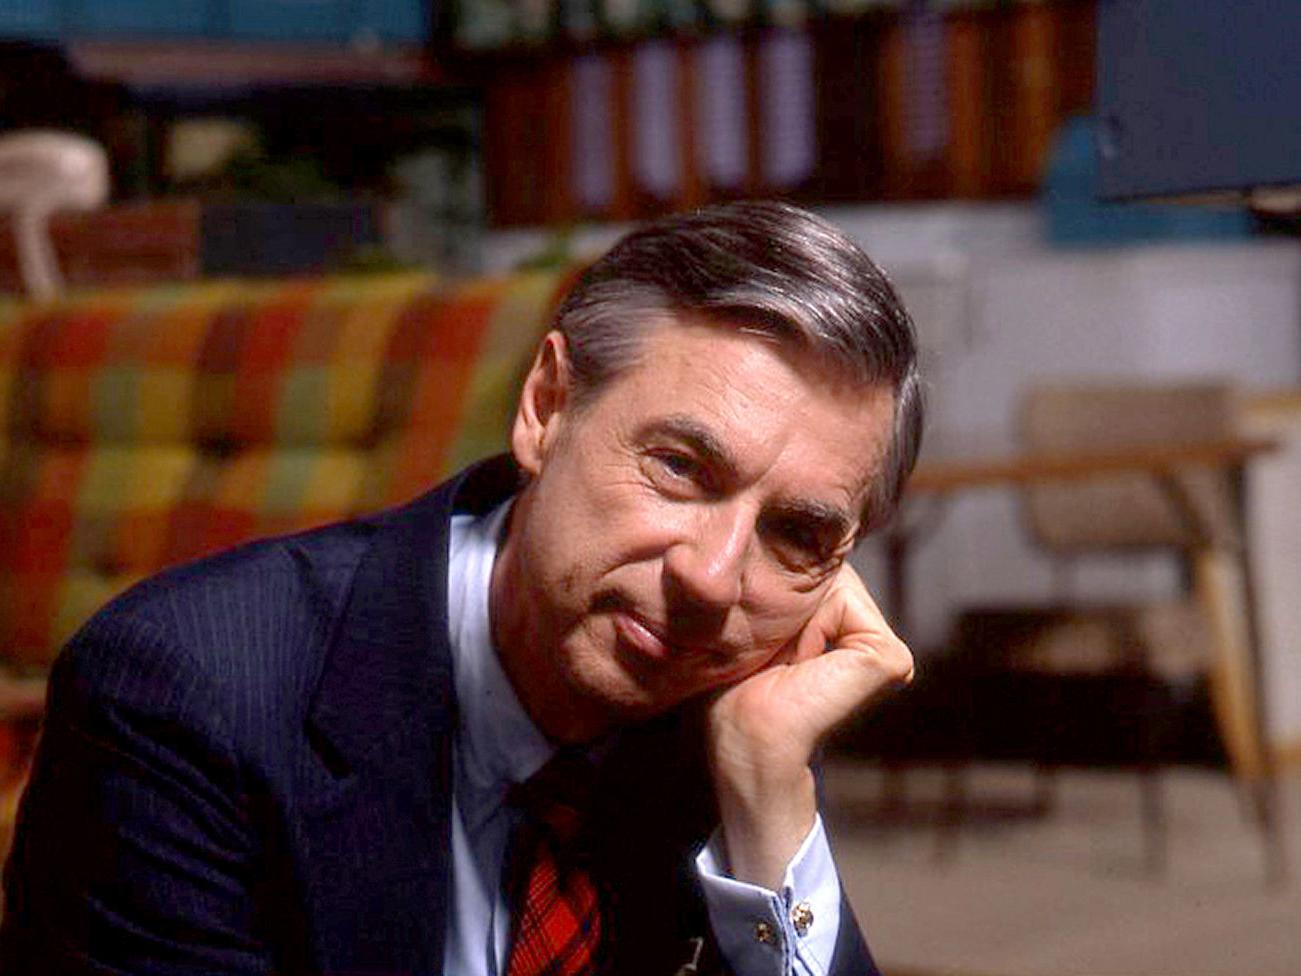 Revisiting Fred Rogers Appeal For Civility Arts Journalnow Com